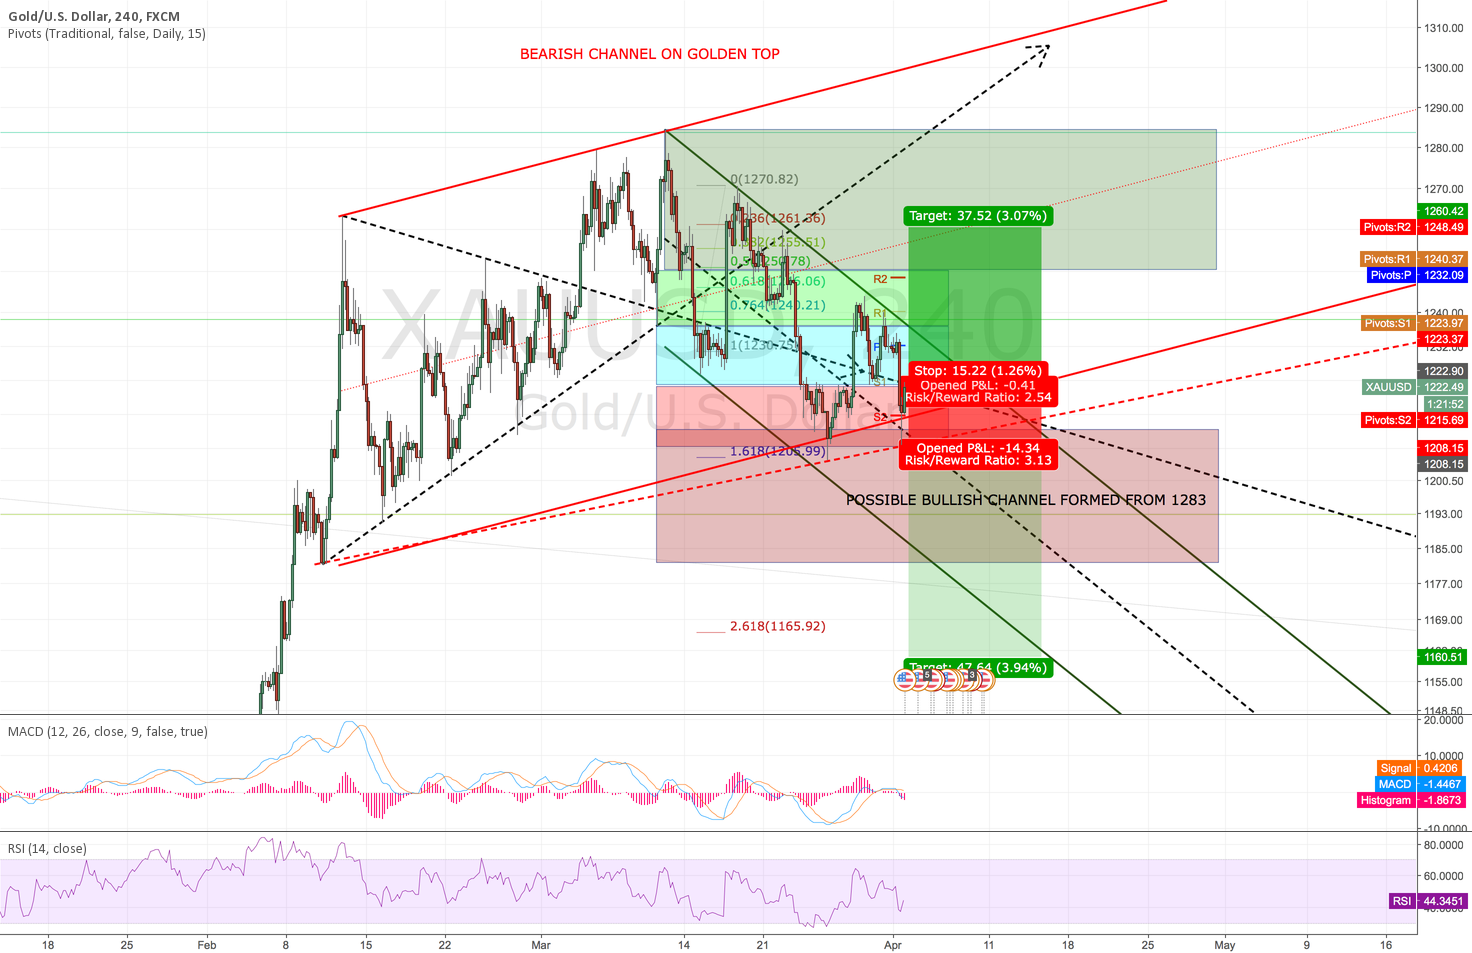 Gold (XAUUSD) trading opportunities for the April 2016